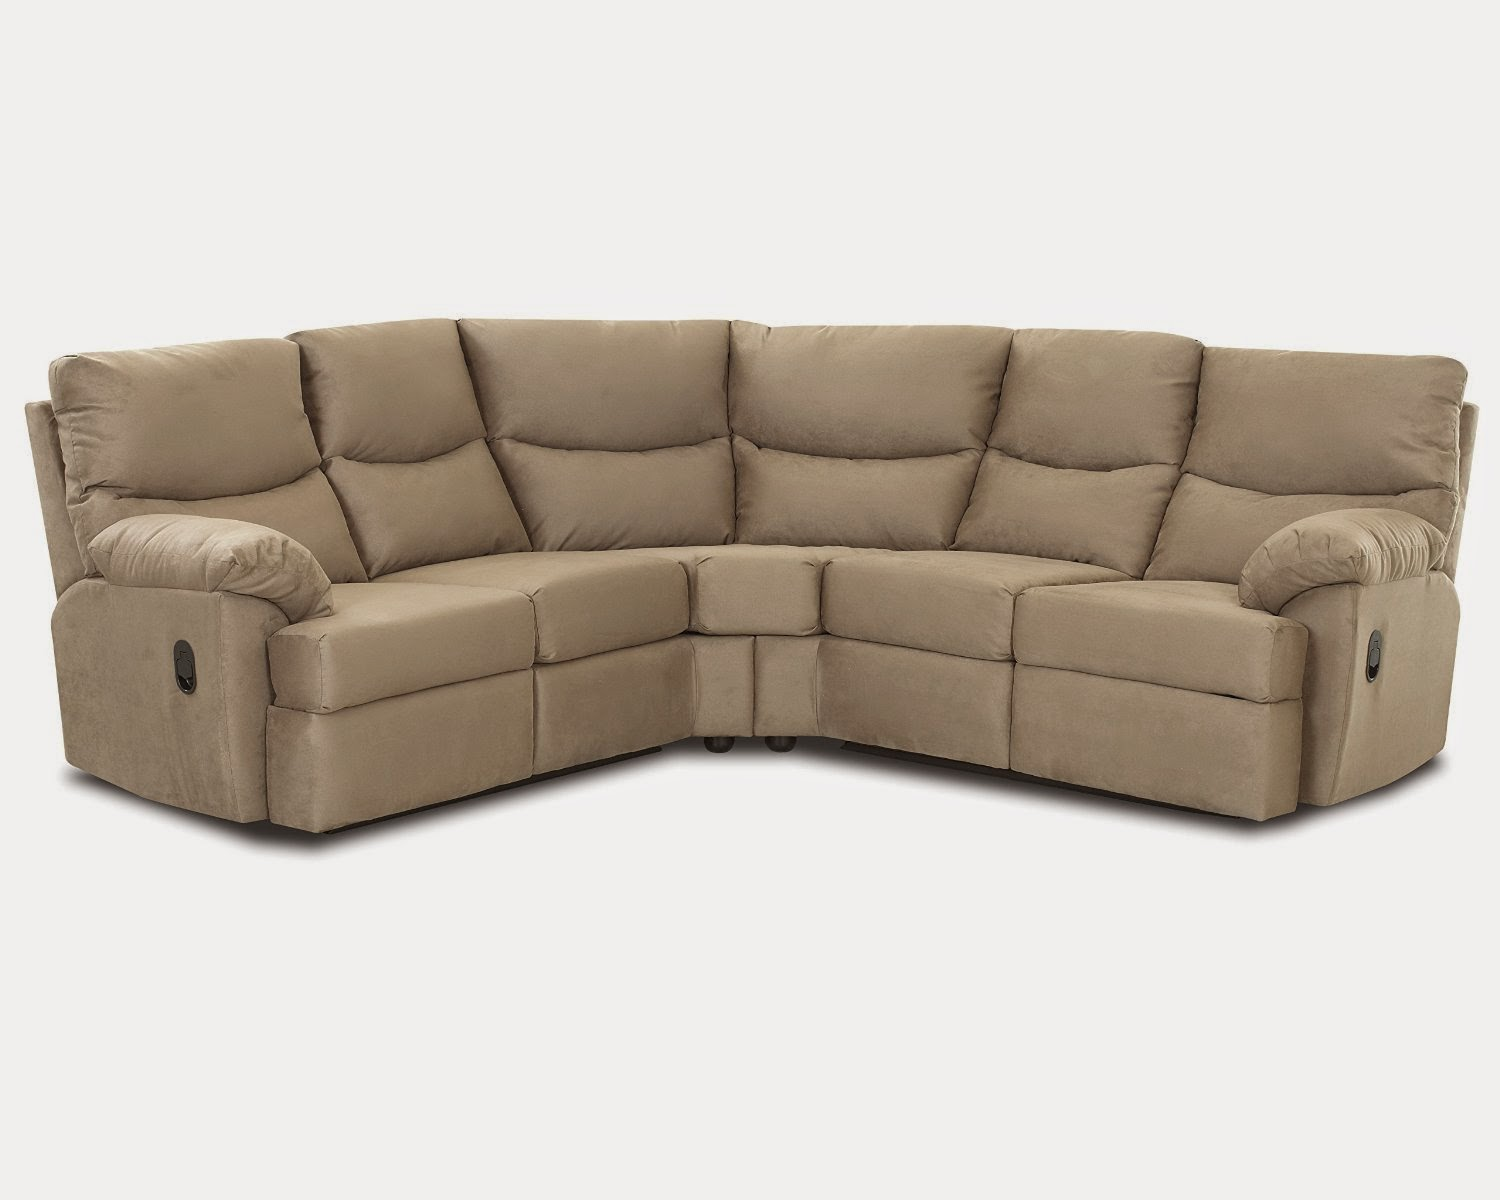 Top Seller Reclining And Recliner Sofa Loveseat Phoenix Reclining Corner Sectional With Sleeper